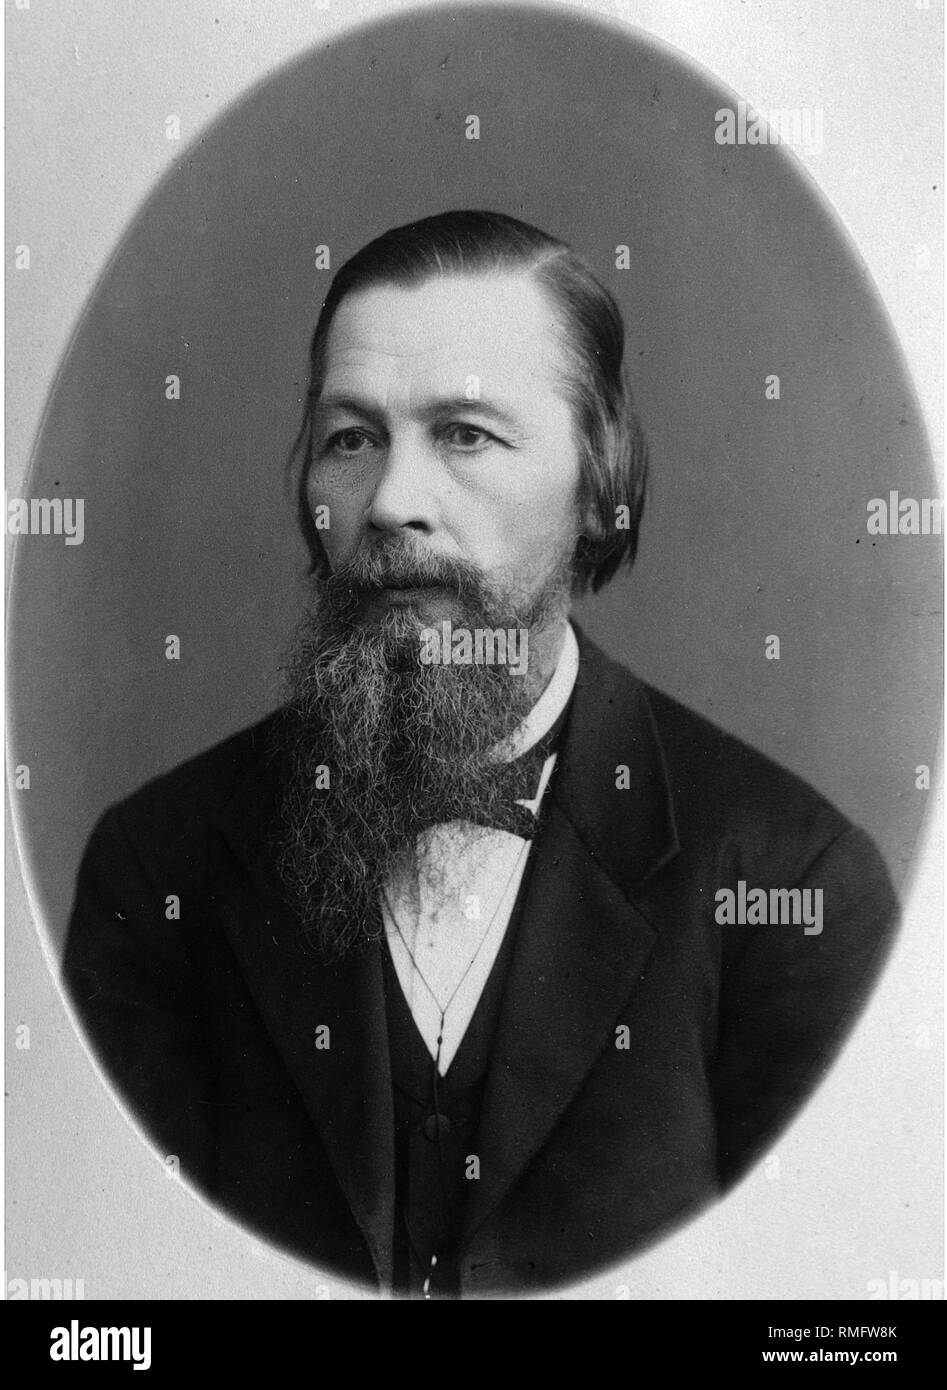 Portrait of the bibliogrpher, publisher and journalist Pyotr A. Yefremov (1830-1907). Albumin Photo - Stock Image